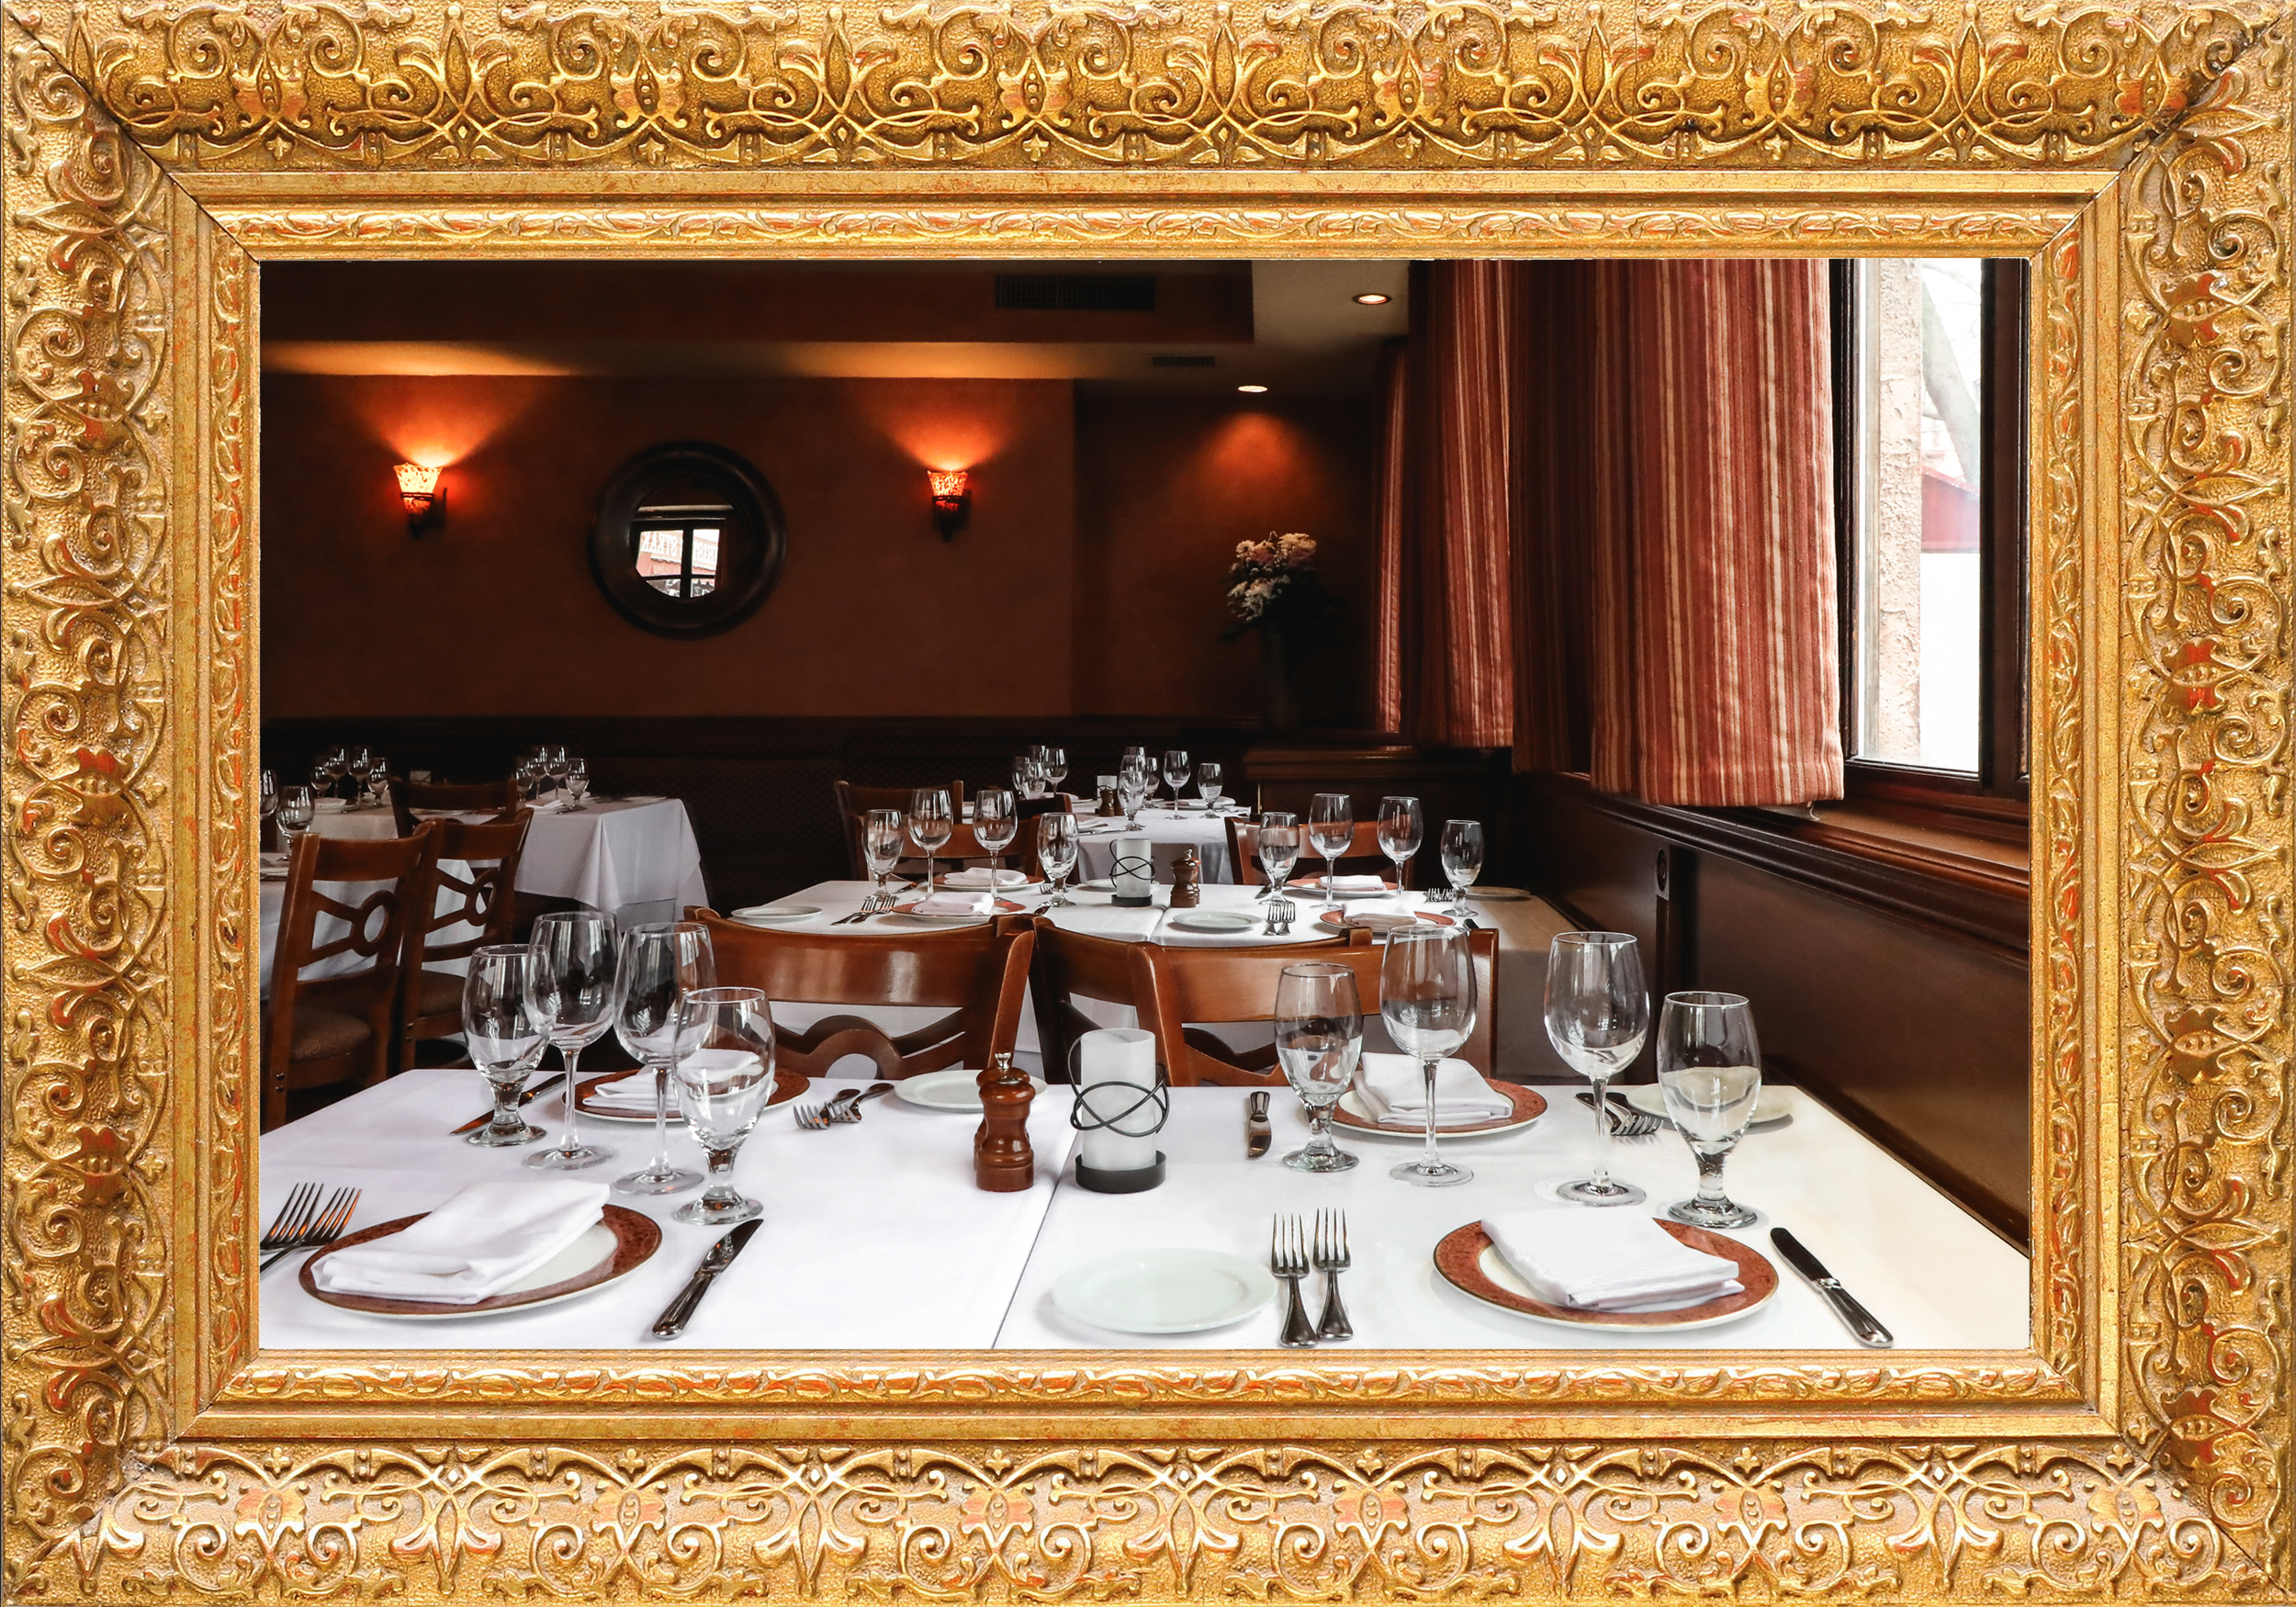 Private Dining - Customized to fit the specific desires of each party, our private dining options range from an intimate seating to a full restaurant takeover.